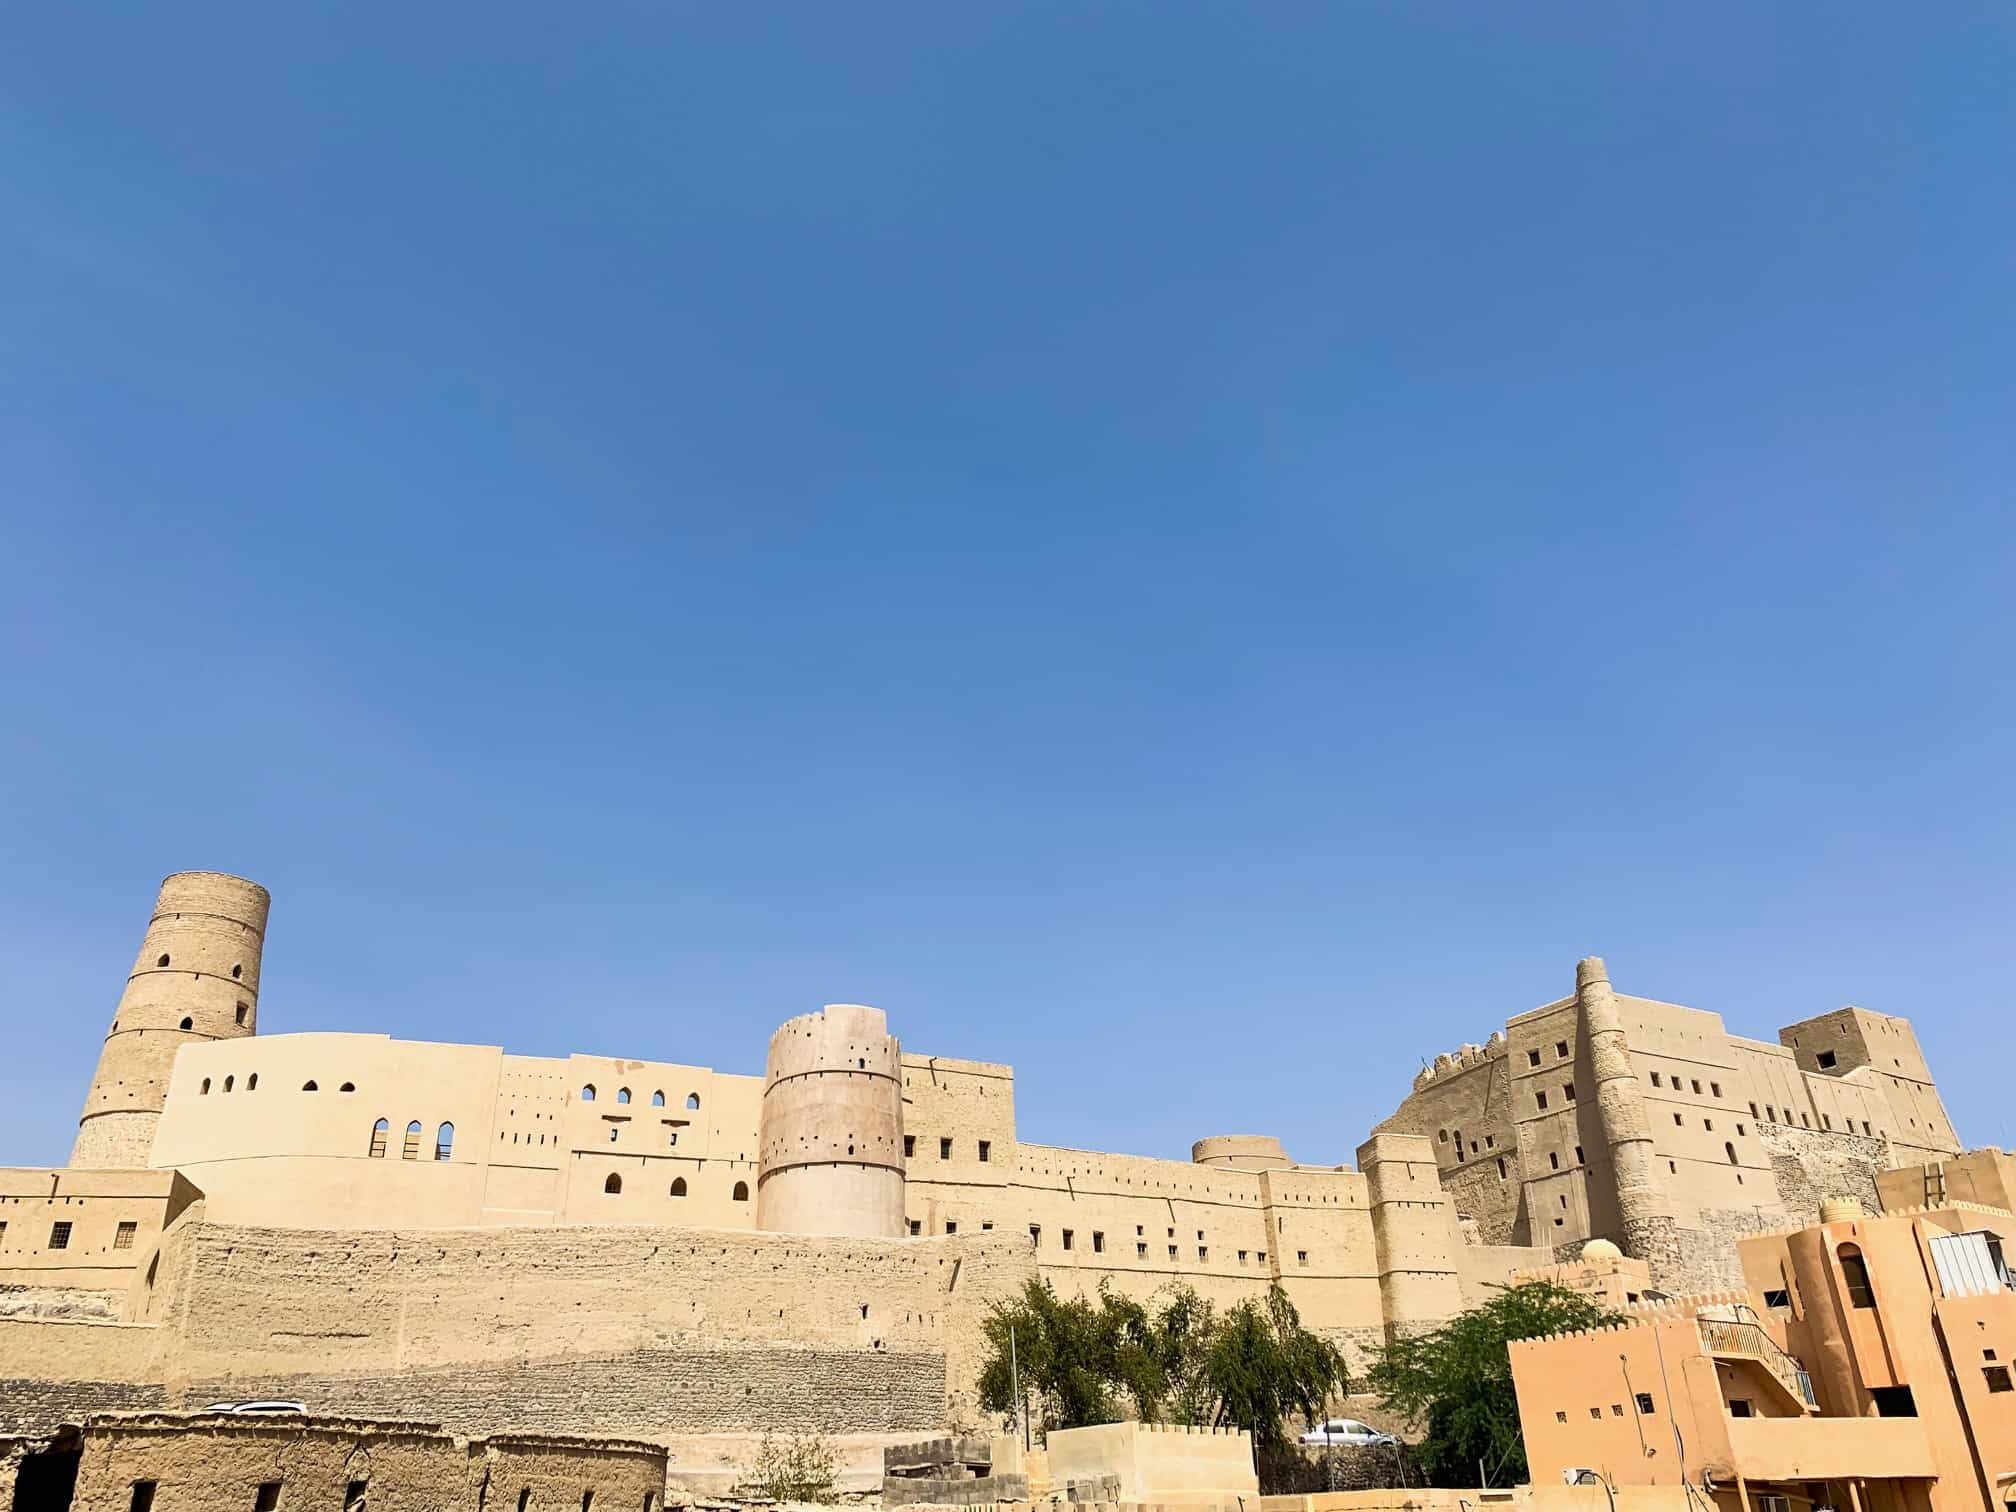 Exterior of Bahla Fort in Oman